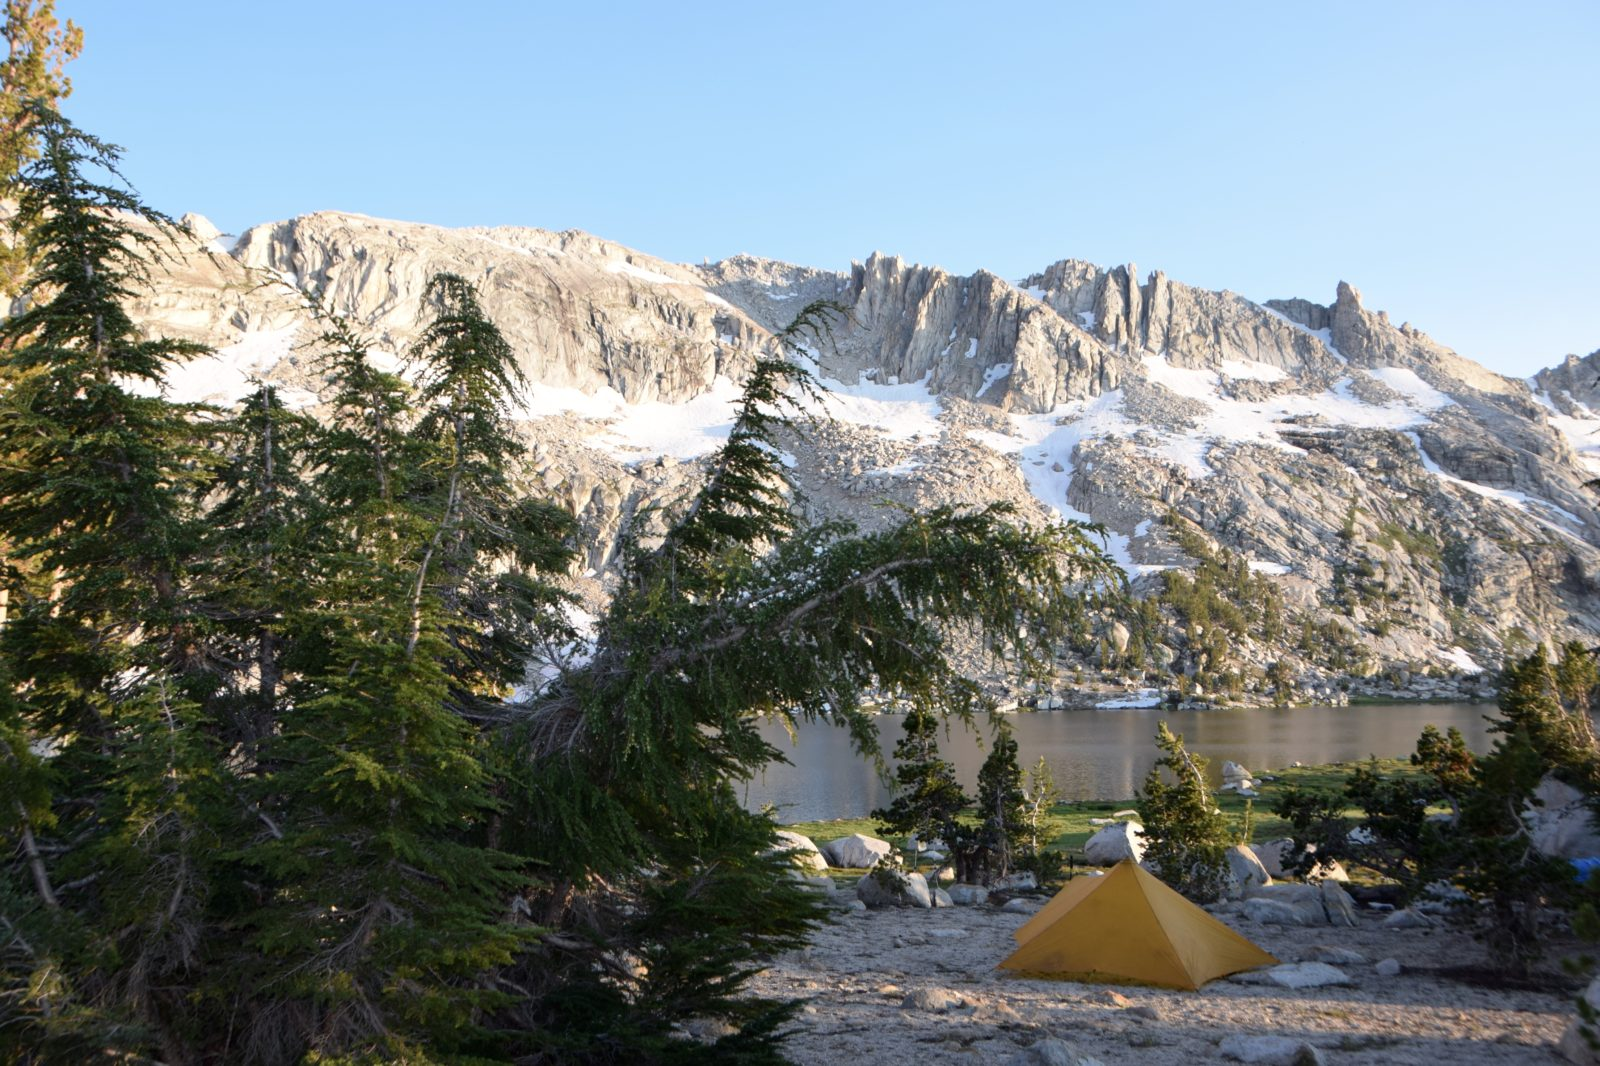 campsite in Yosemite